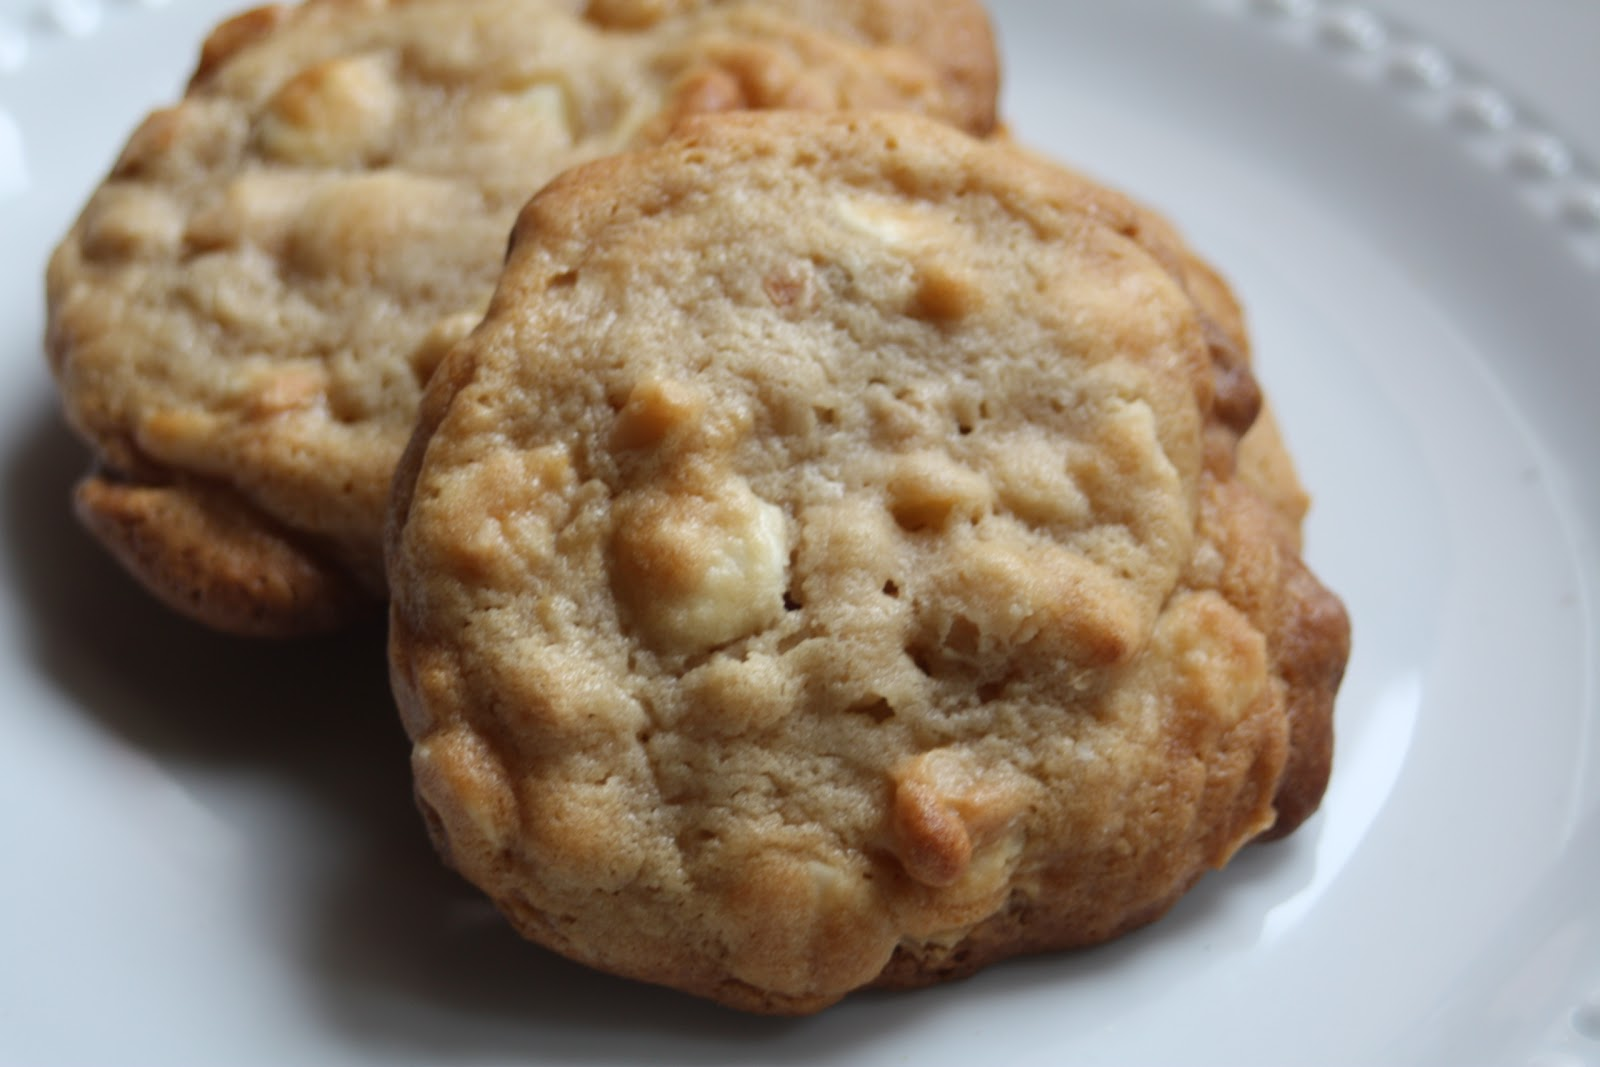 Paper Plates and China: White Chocolate Chip Macadamia Nut Cookies